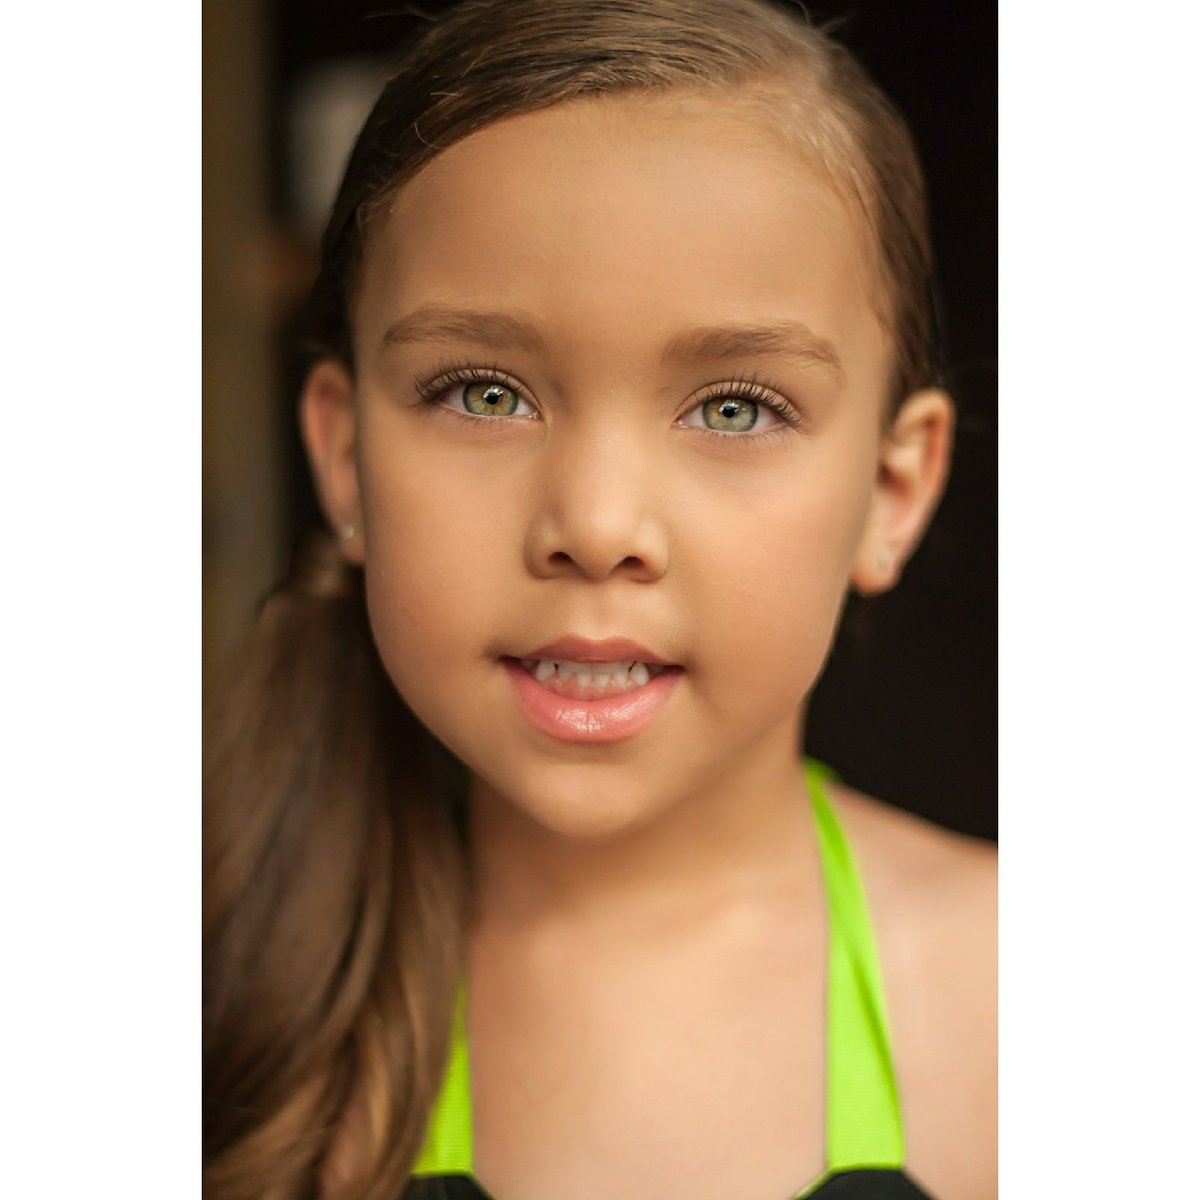 She amazes me with each Photo shoot. http://Www.instagram.com/kaedence_marie  #mixedkids #perfectlyblended #childmodel #mixedgirl #beautifulfacekids #signme #modelkid #beautifuleyes #scoutme #naturalbeauty #kidmodel #ig_kids #naturallyperfectkids #oklahomakid #oklahomamodel #prettyeyes #greeneyespic.twitter.com/AVvi1Y6t8Z